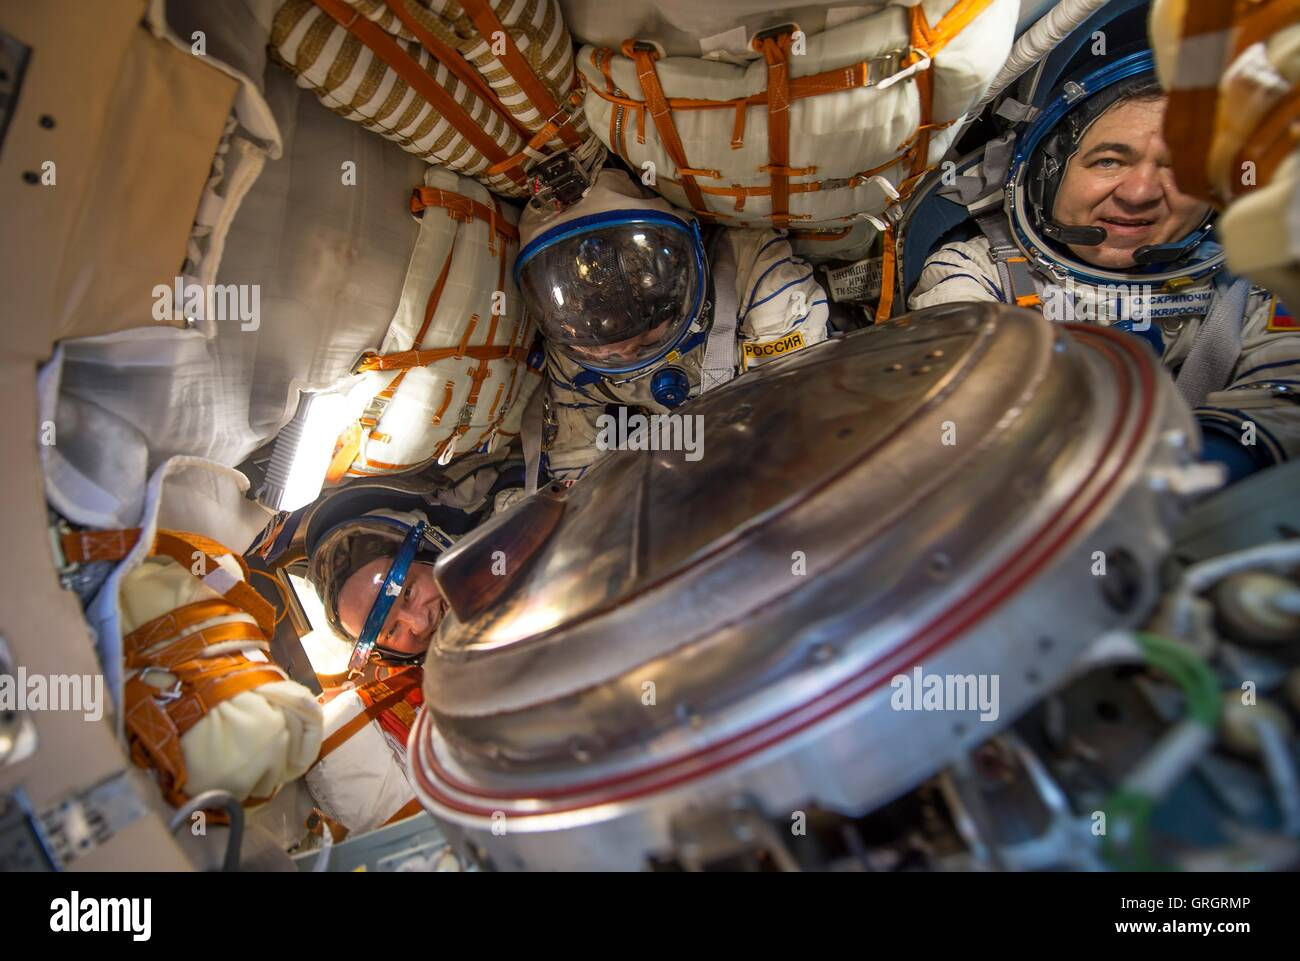 A look inside the Soyuz TMA-20M spacecraft after the hatch was opened with International Space Station Expedition - Stock Image